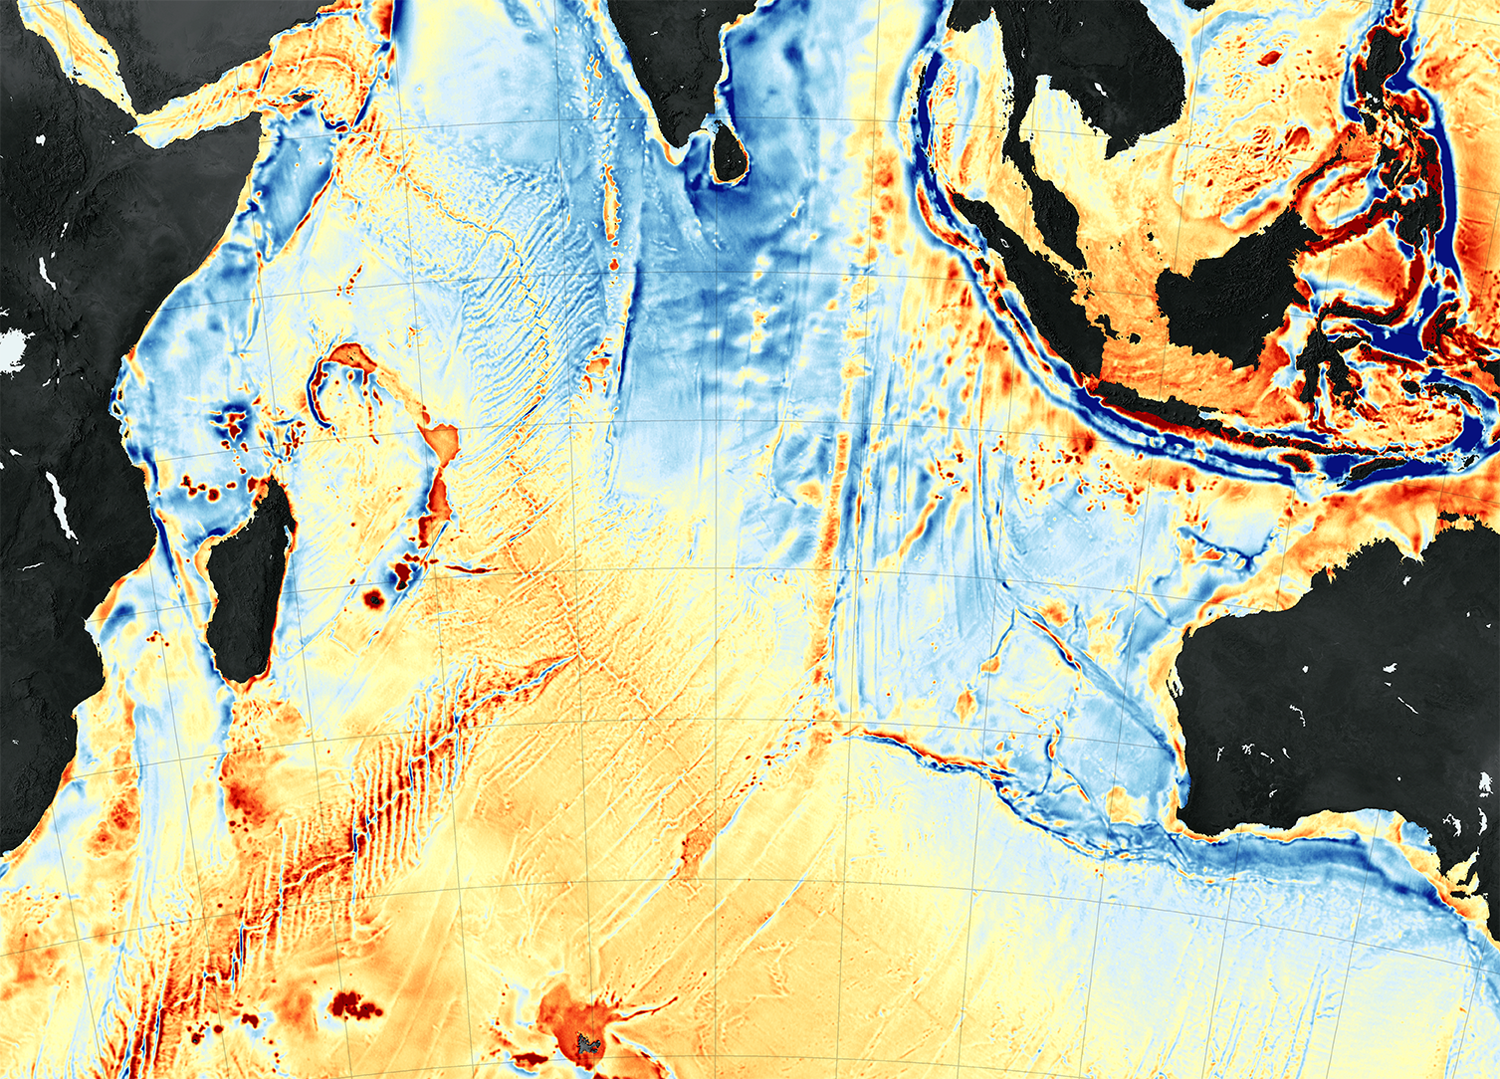 Innovation in seabed mapping